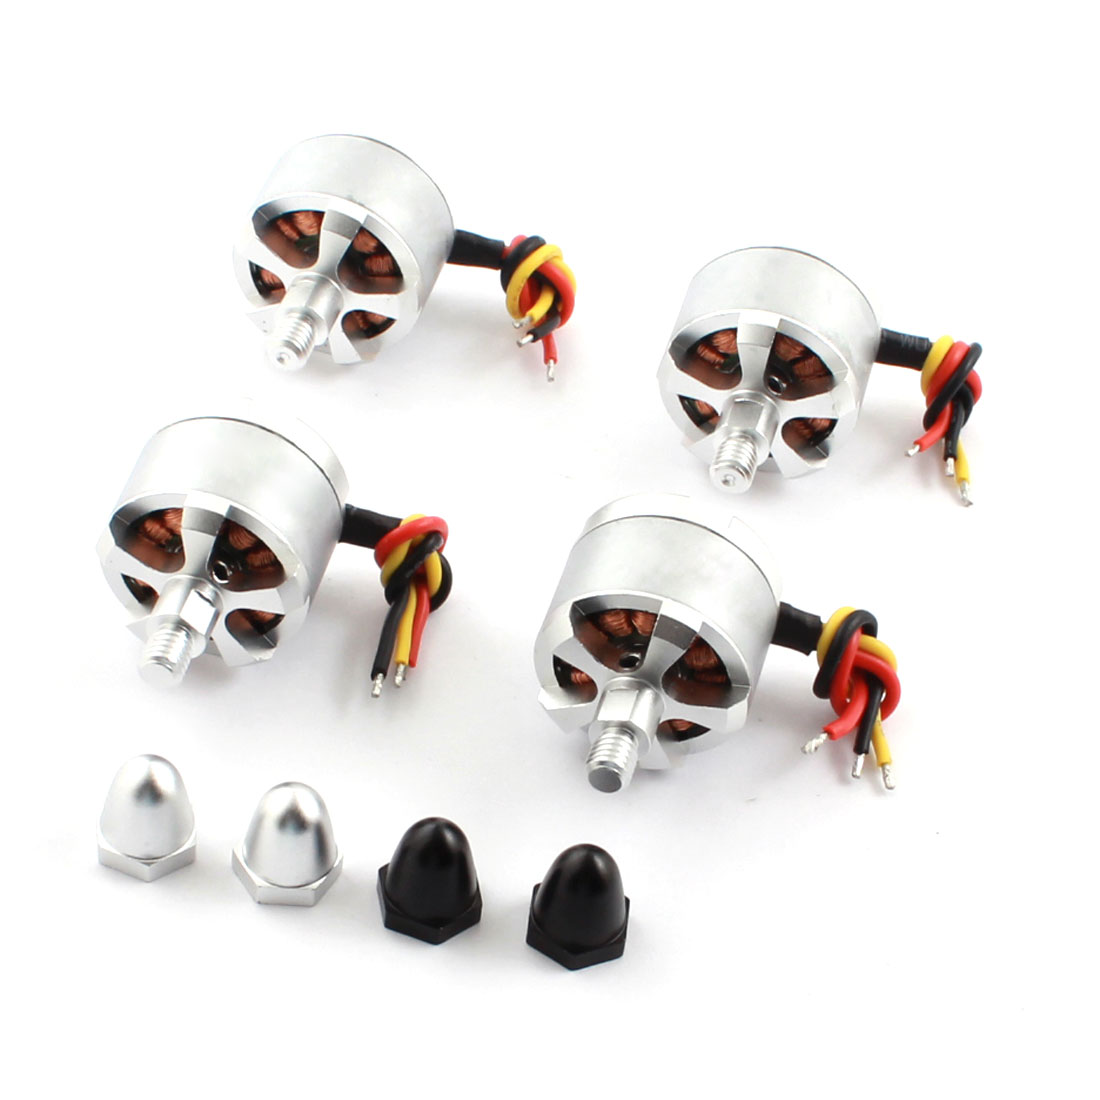 4Pcs MX2212 DC 7-12V 920KV CW CCW Rotating Brushless Motor for DJI Phantom F450 F550 Quad Multirotor